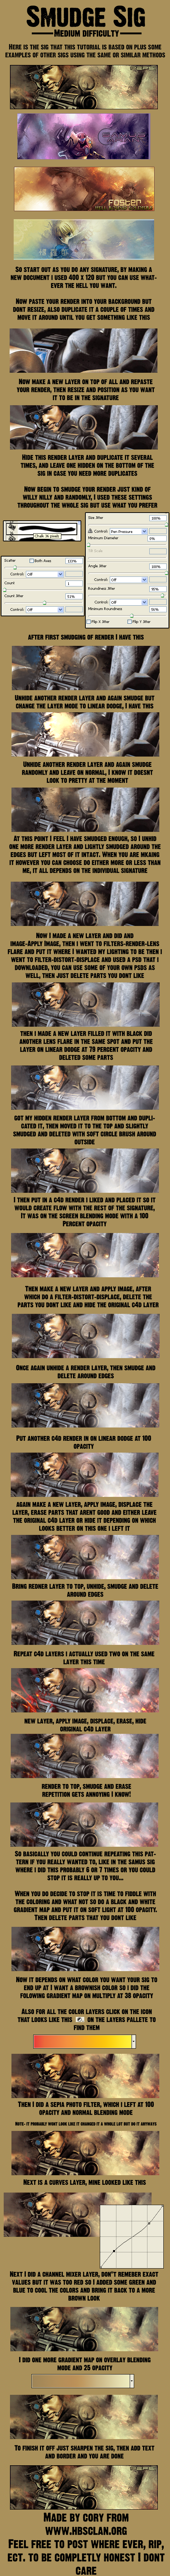 Smudge Tutorial by CoryK